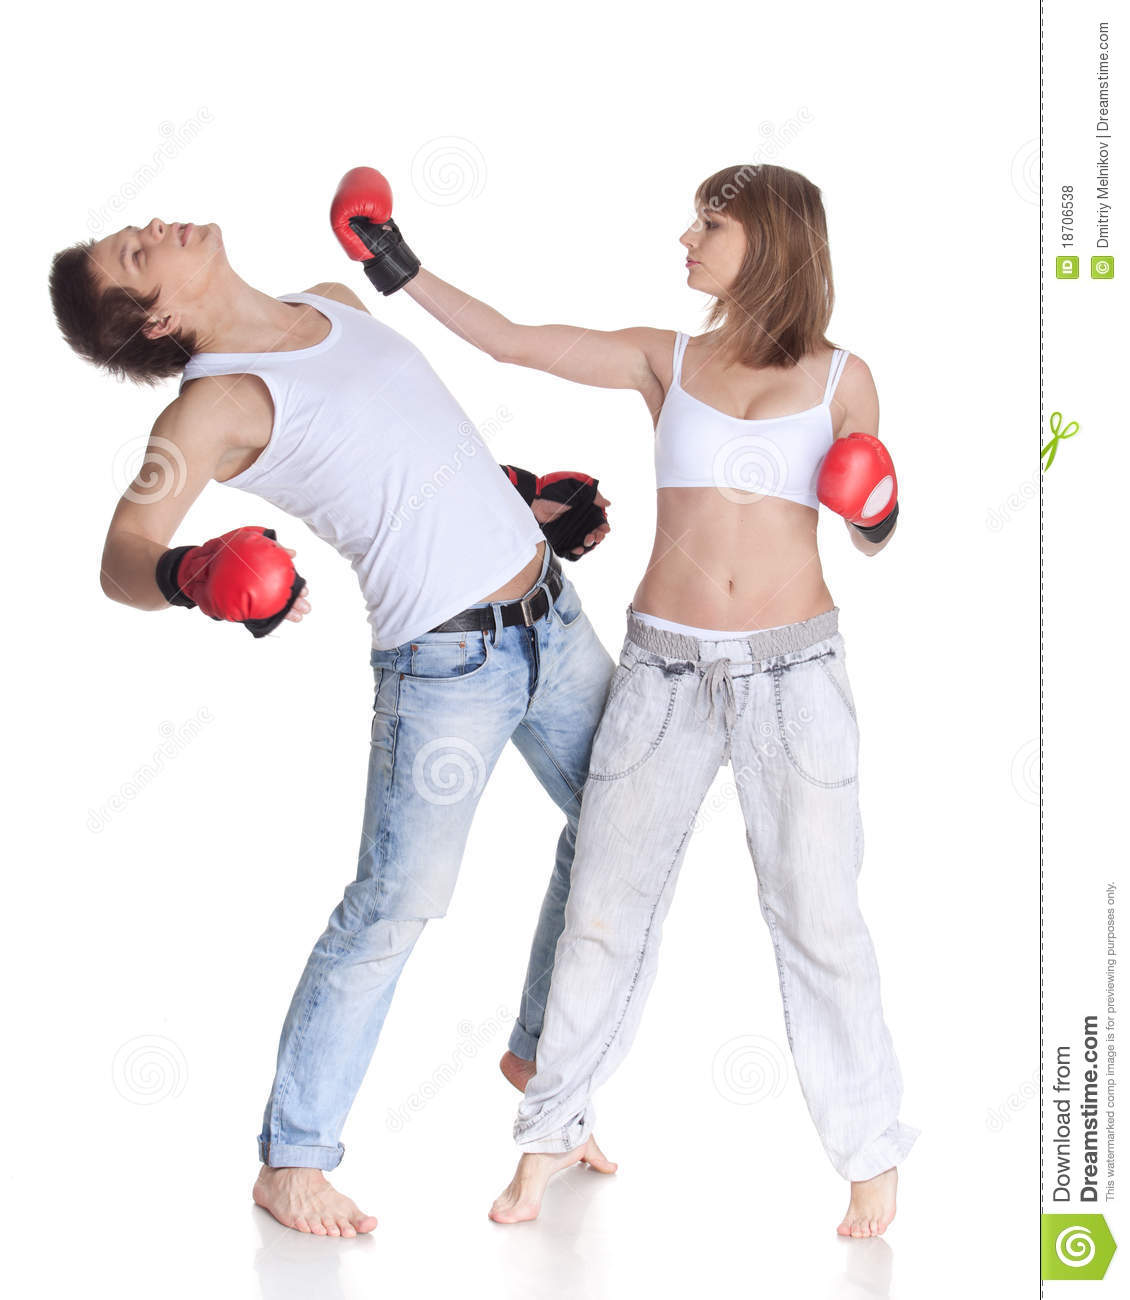 young-sporty-people-fighting-gloves-18706538